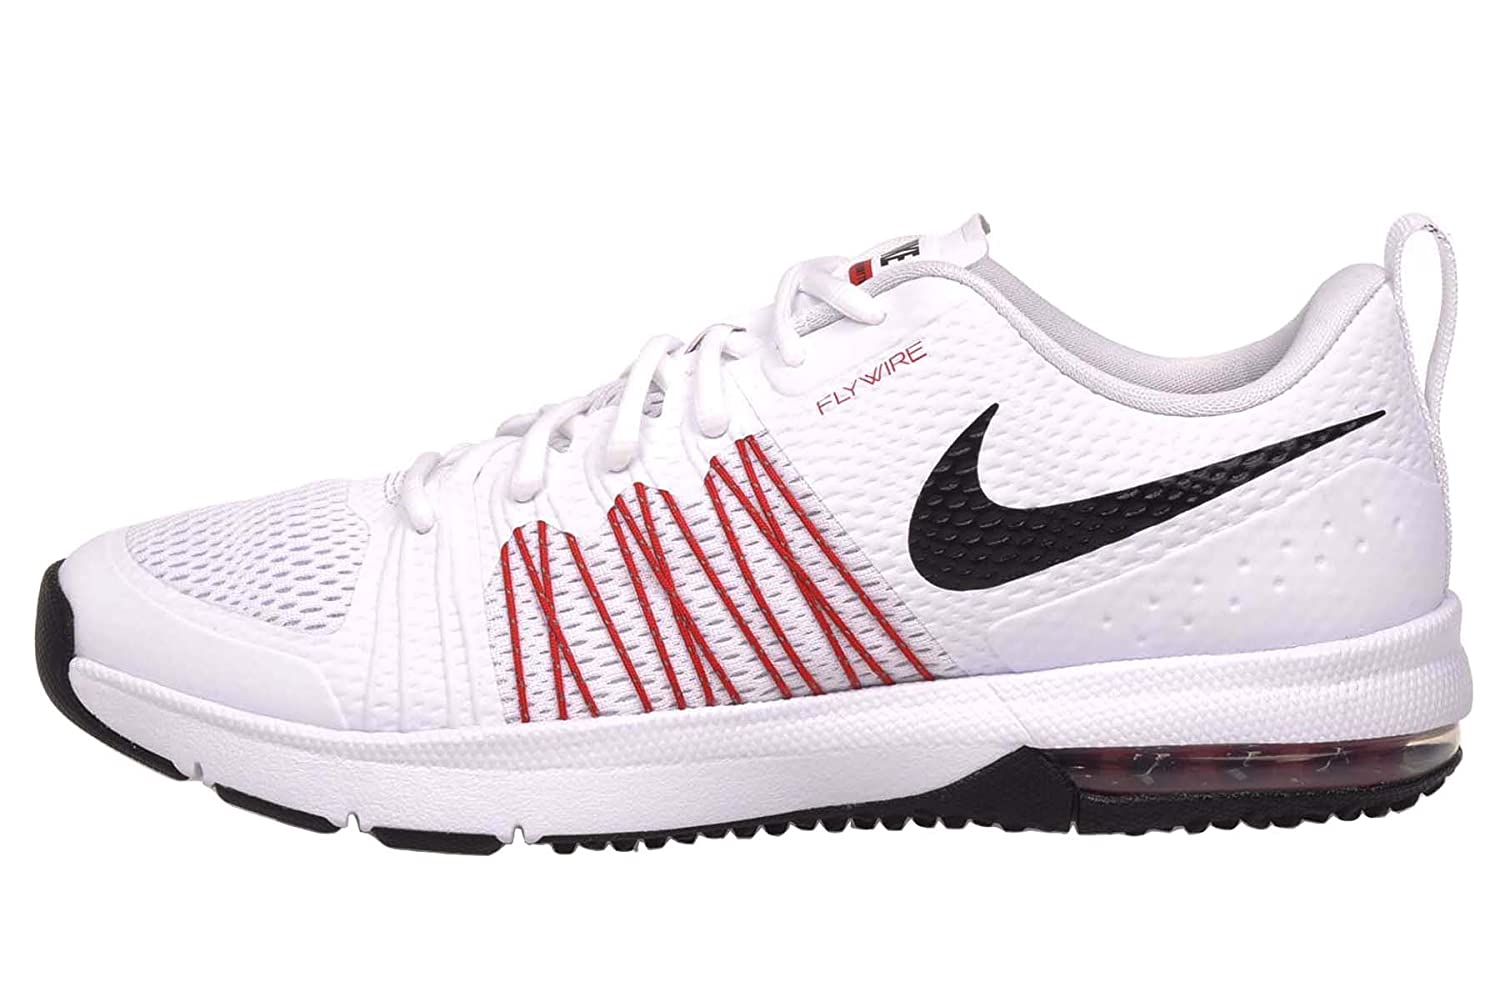 check out 01a91 8a4c2 ... Amazon.com Nike Mens Air Max Effort TR White Red Running Cross Trainer  Shoes Track ...